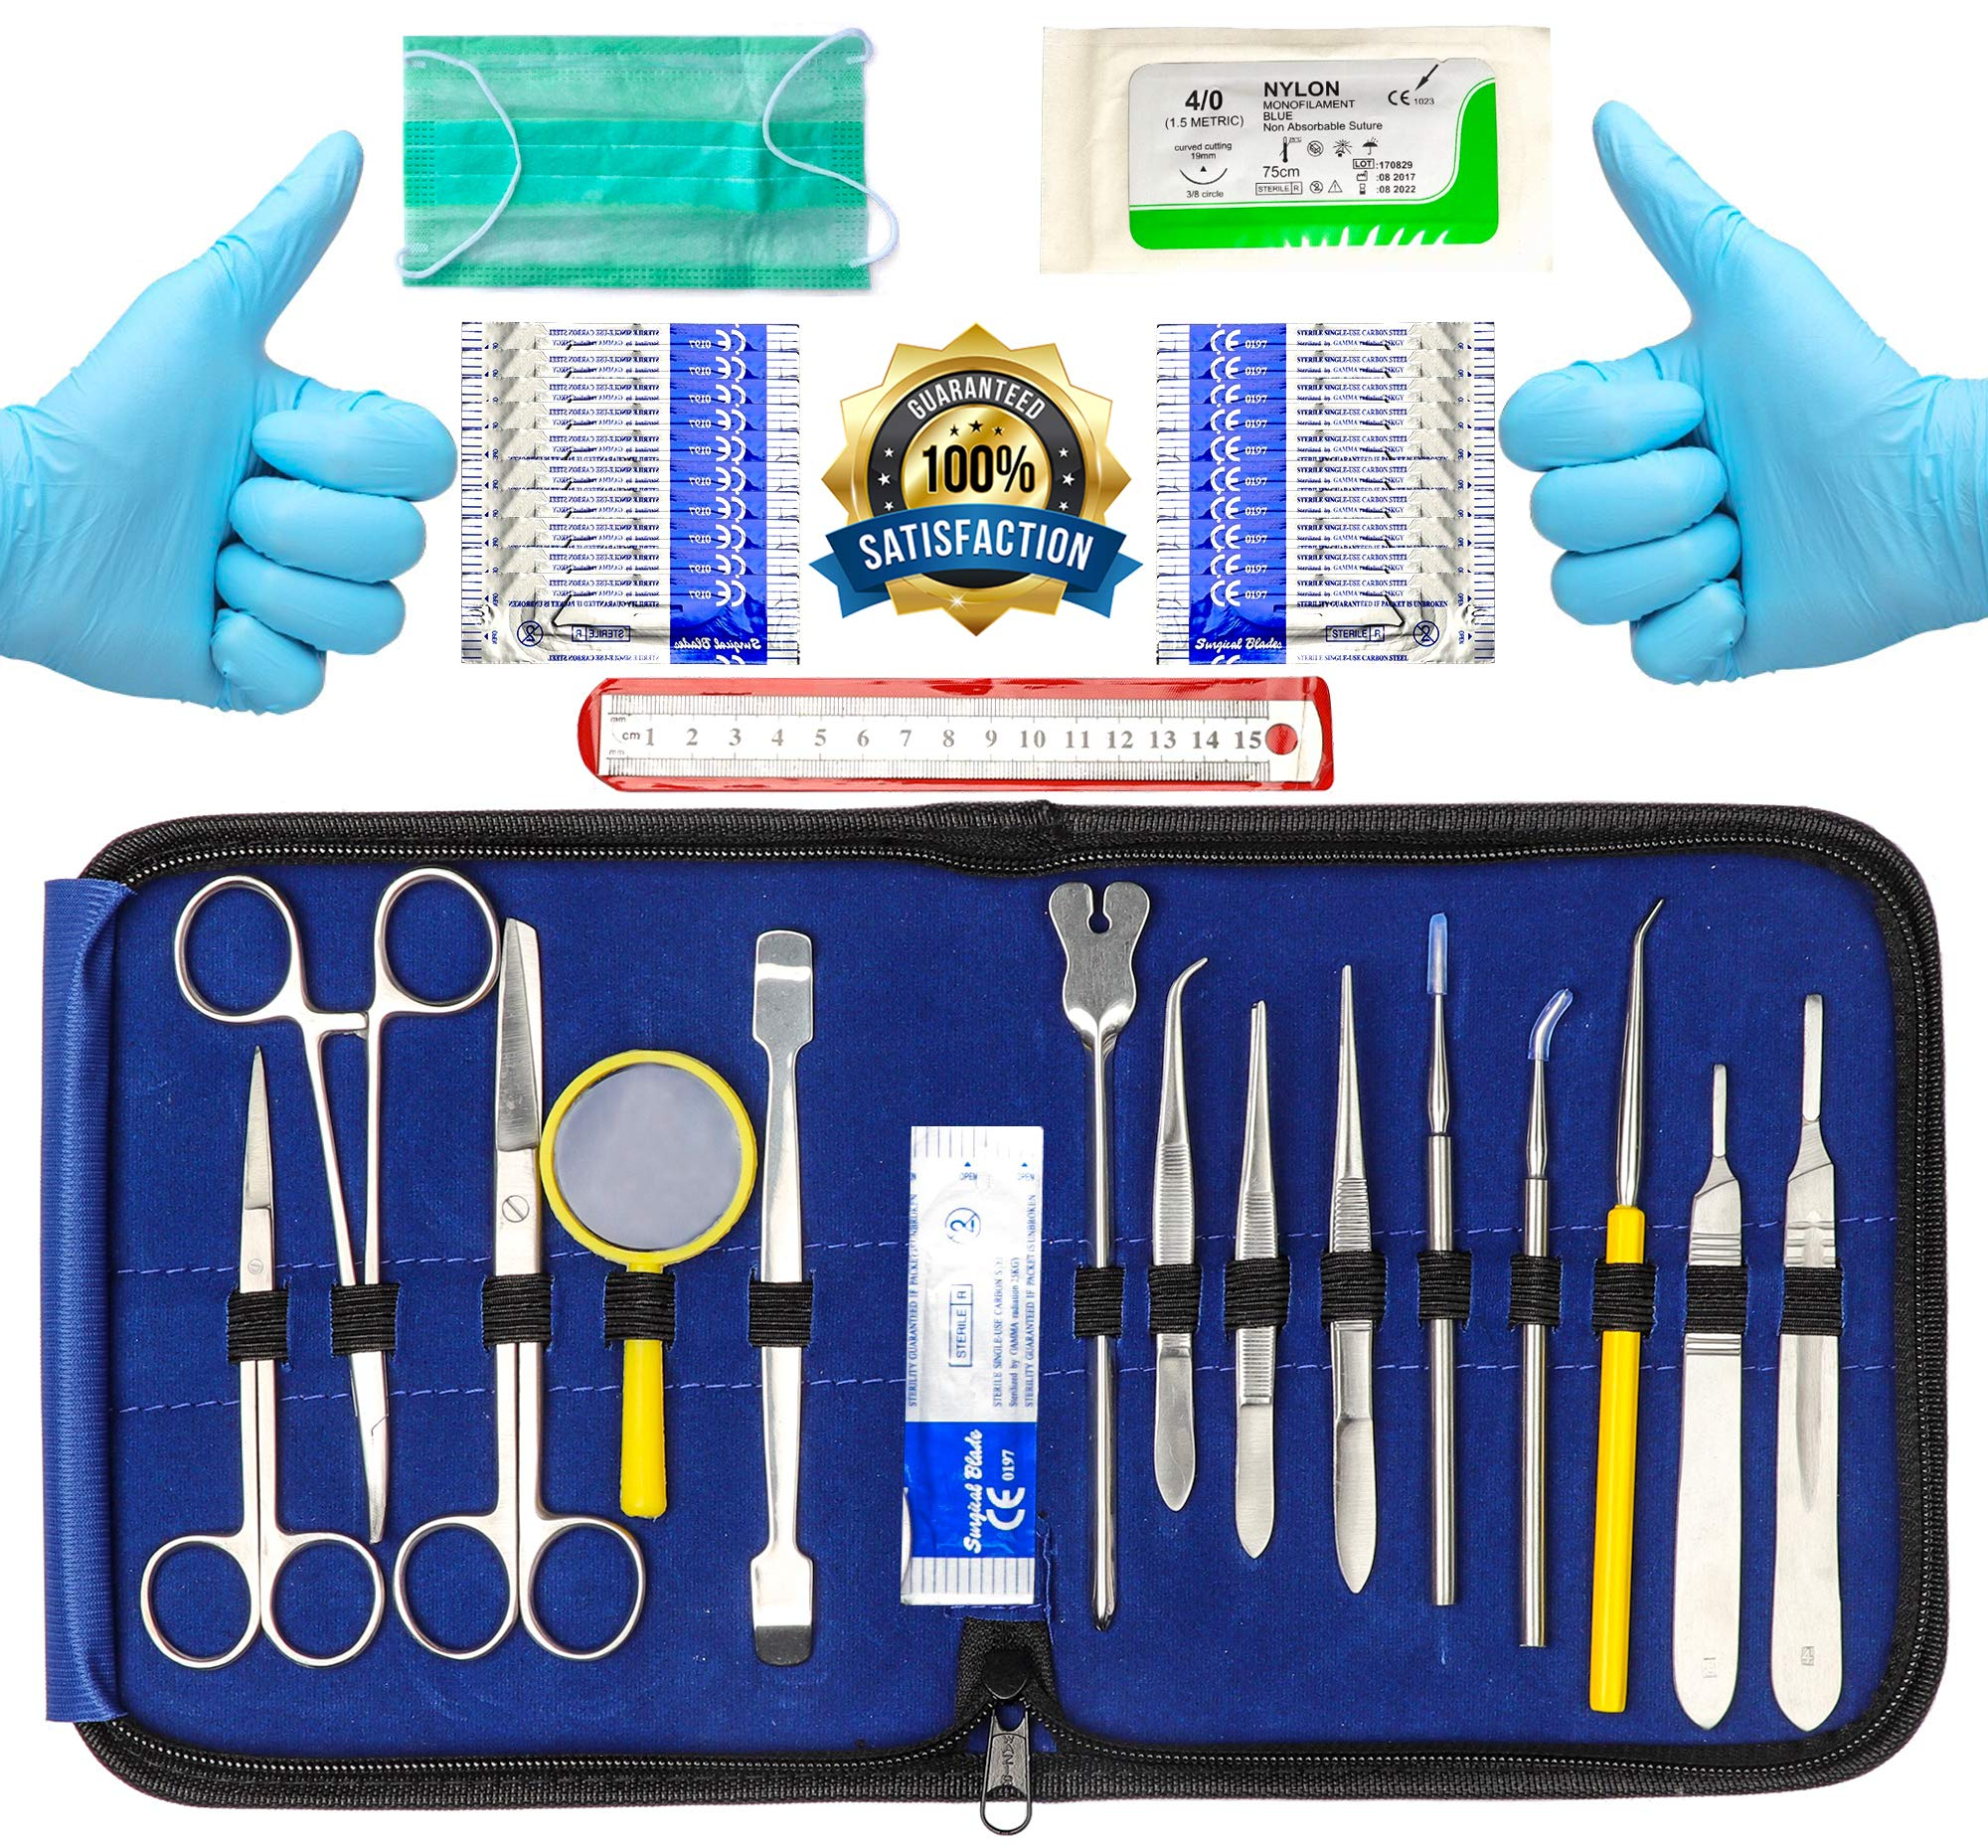 39 Pcs Advanced Dissection Kit - For Botany veterinary Medical Student Full Dissection Kit Set with Stainless Steel Instruments For Dissecting Frogs Perfect for Anatomy Biology Students.       by Pro Instruments